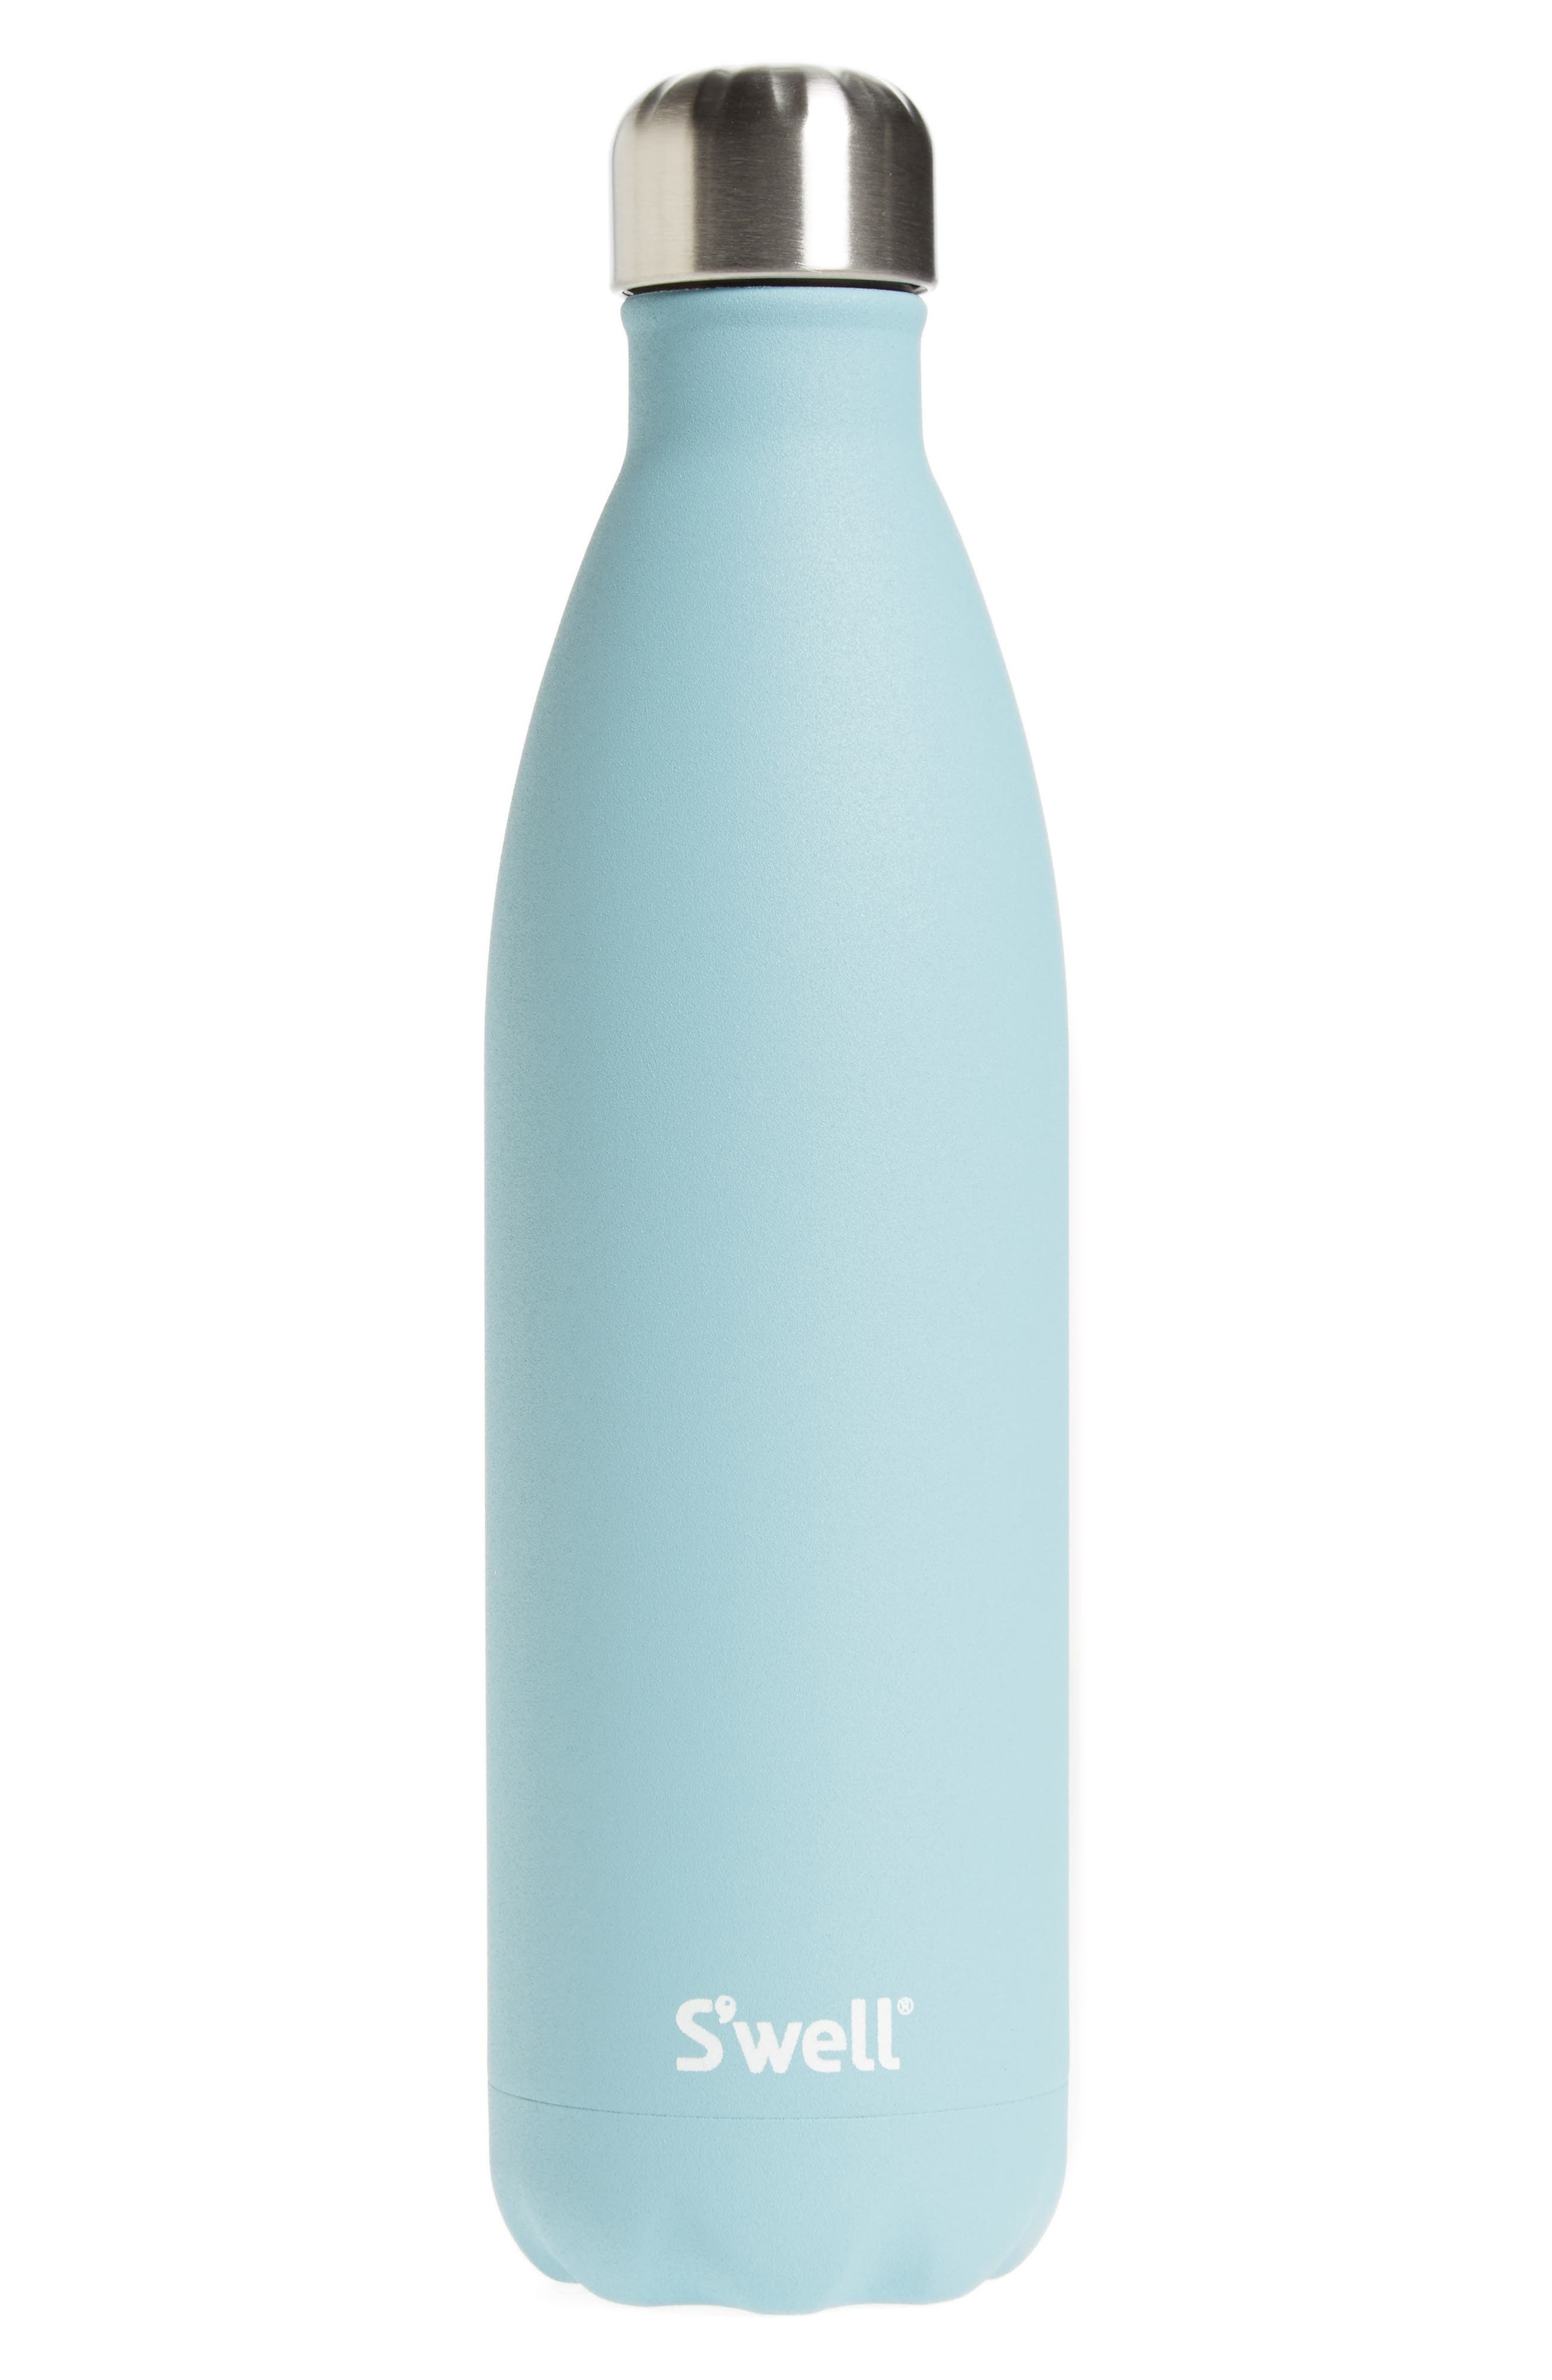 Alternate Image 1 Selected - S'well Aquamarine Insulated Stainless Steel Water Bottle